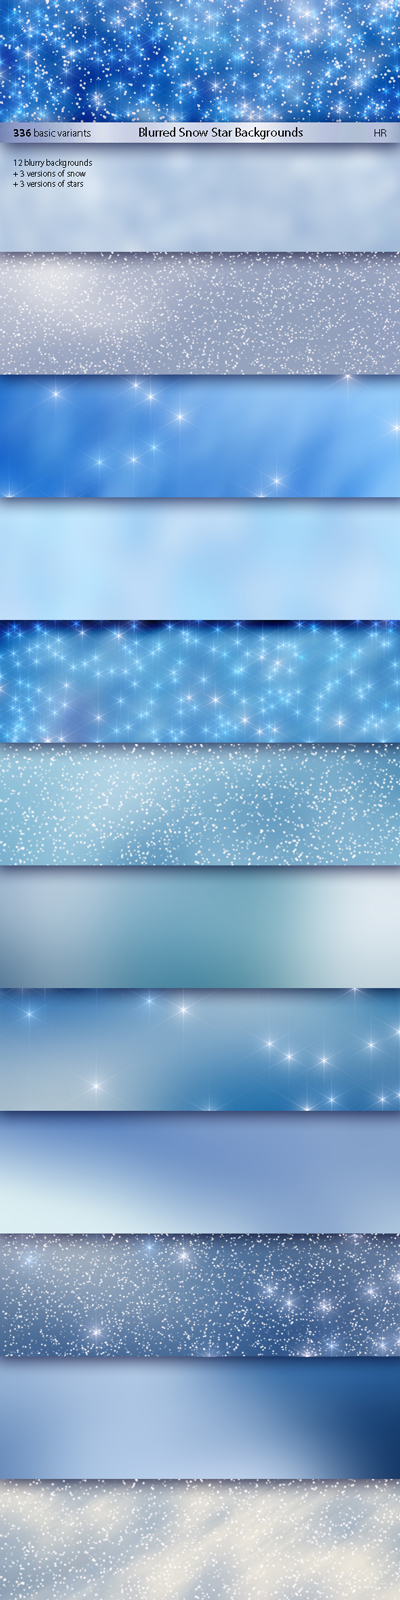 Blurred Snow Star Backgrounds